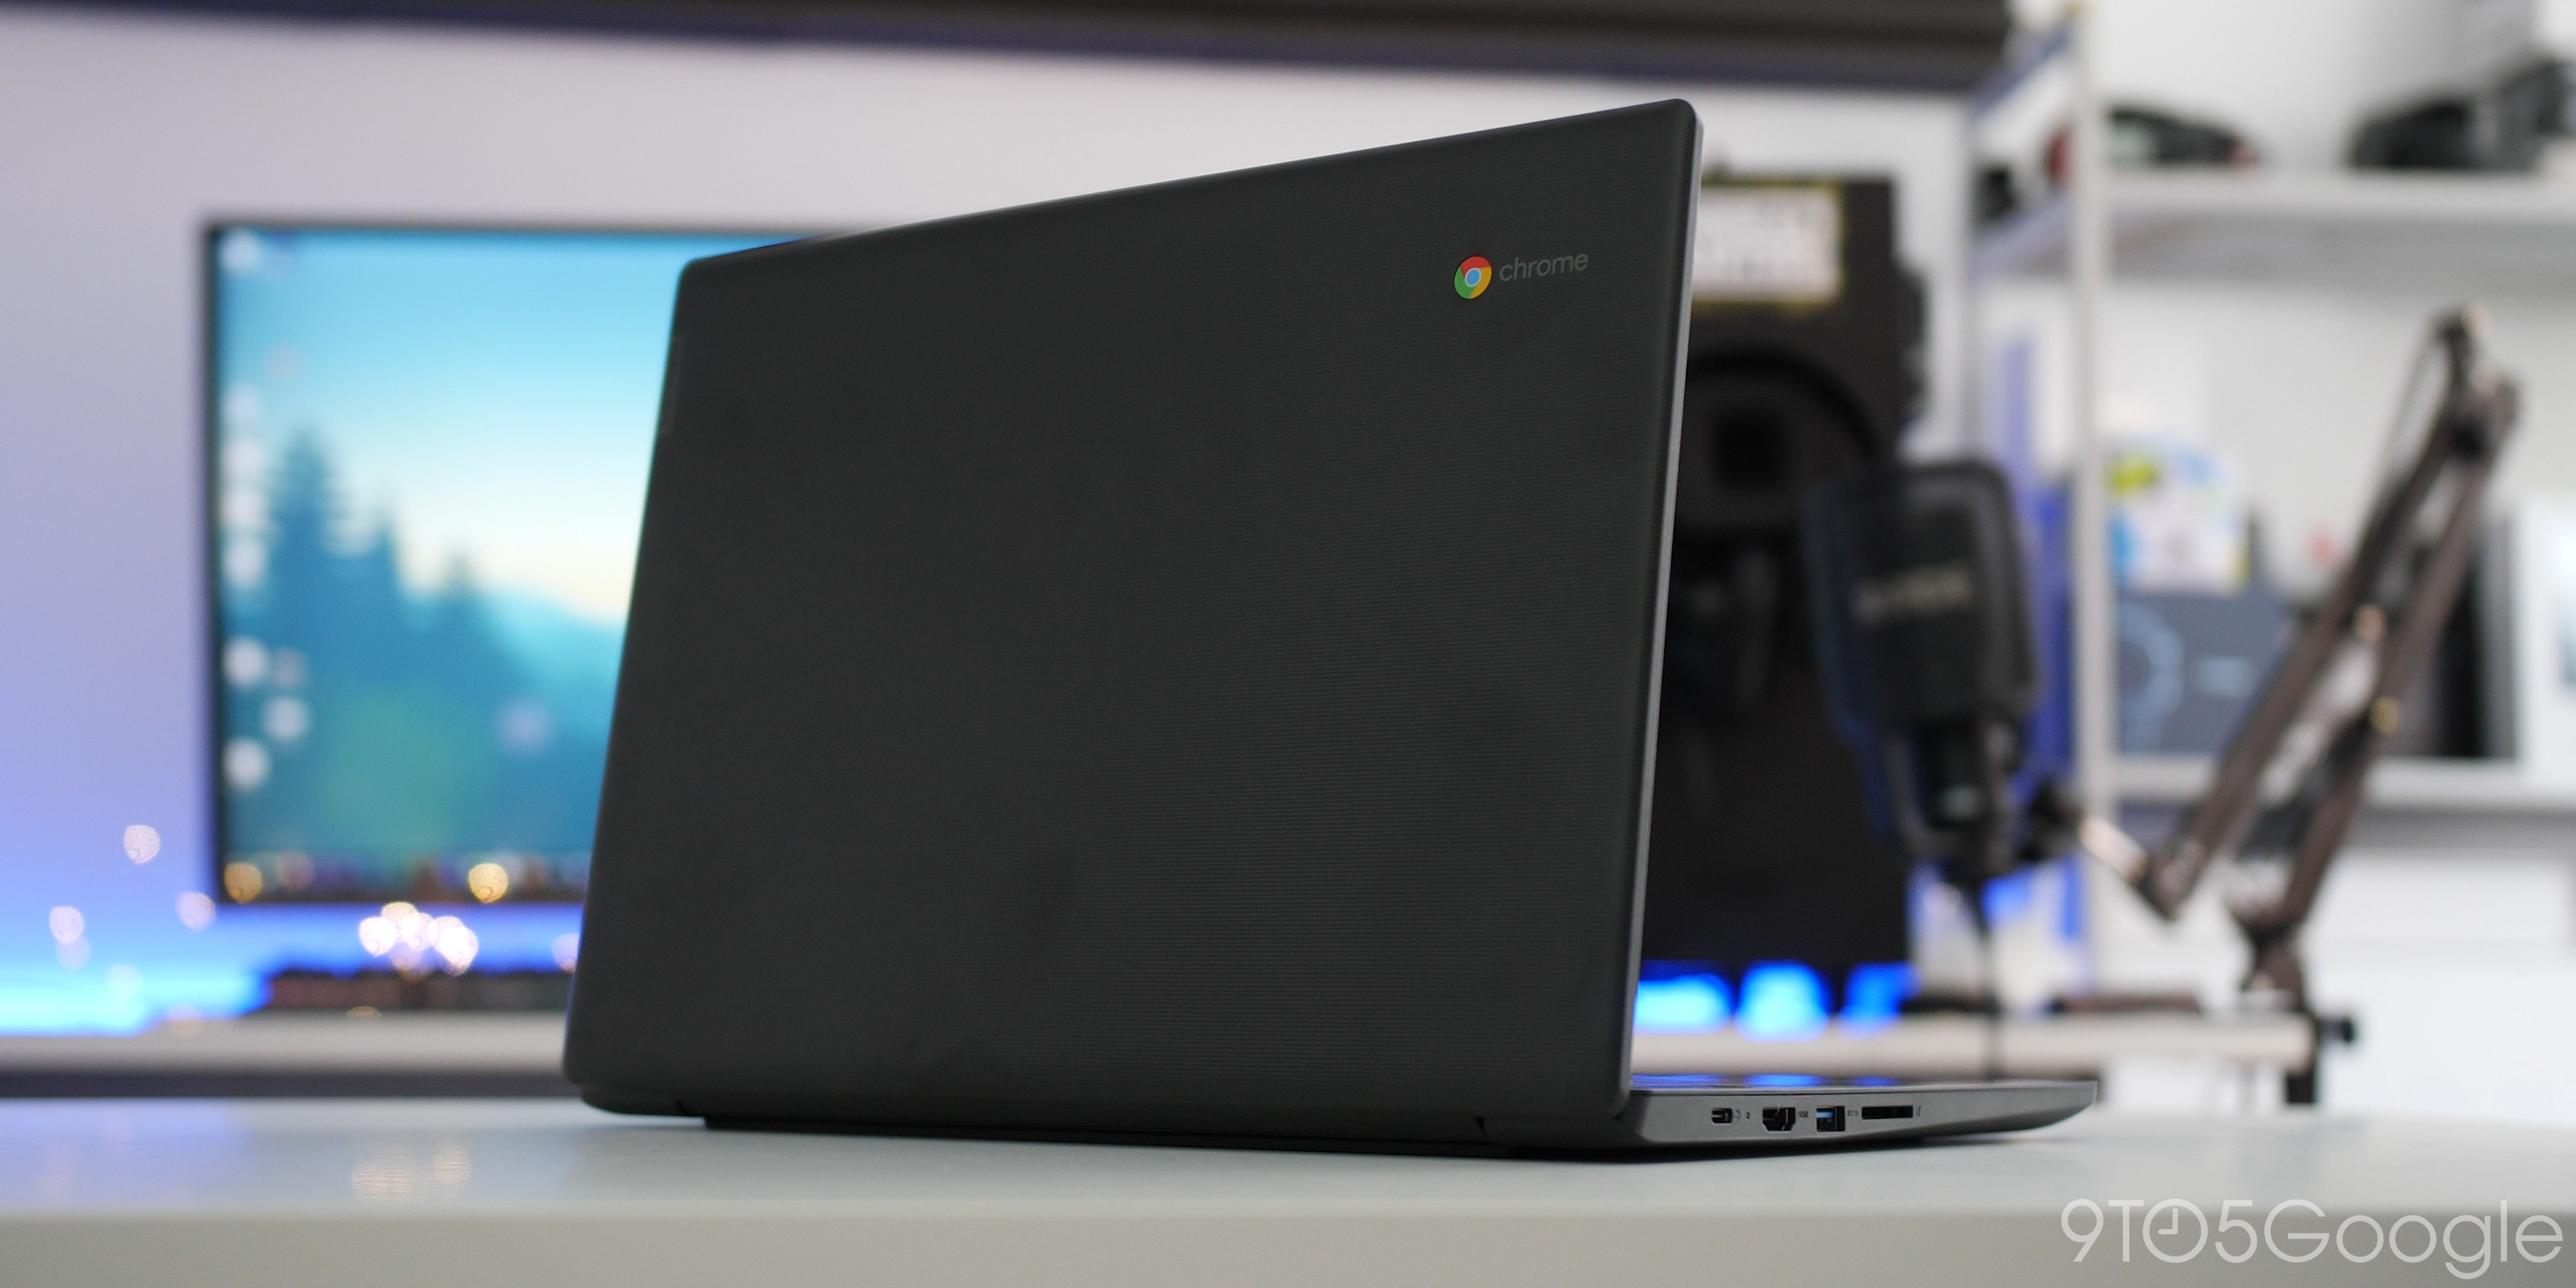 Lenovo S330 Review The Benchmark For Budget Laptops 9to5google